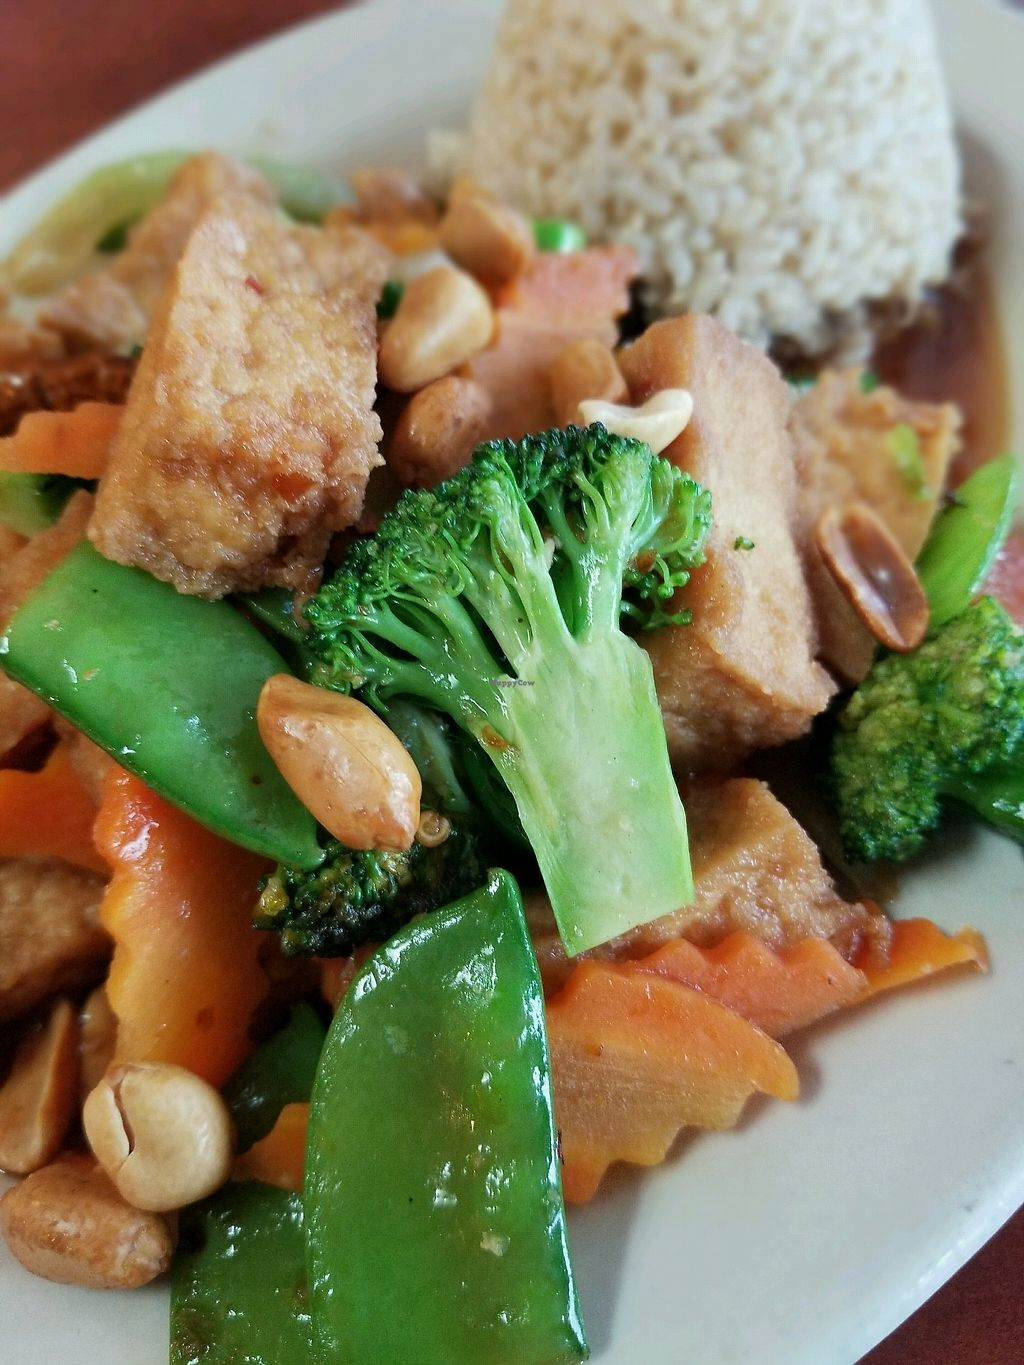 """Photo of Bambu  by <a href=""""/members/profile/IanHoxworth"""">IanHoxworth</a> <br/>Kung Pow Tofu  <br/> November 17, 2017  - <a href='/contact/abuse/image/51240/326550'>Report</a>"""